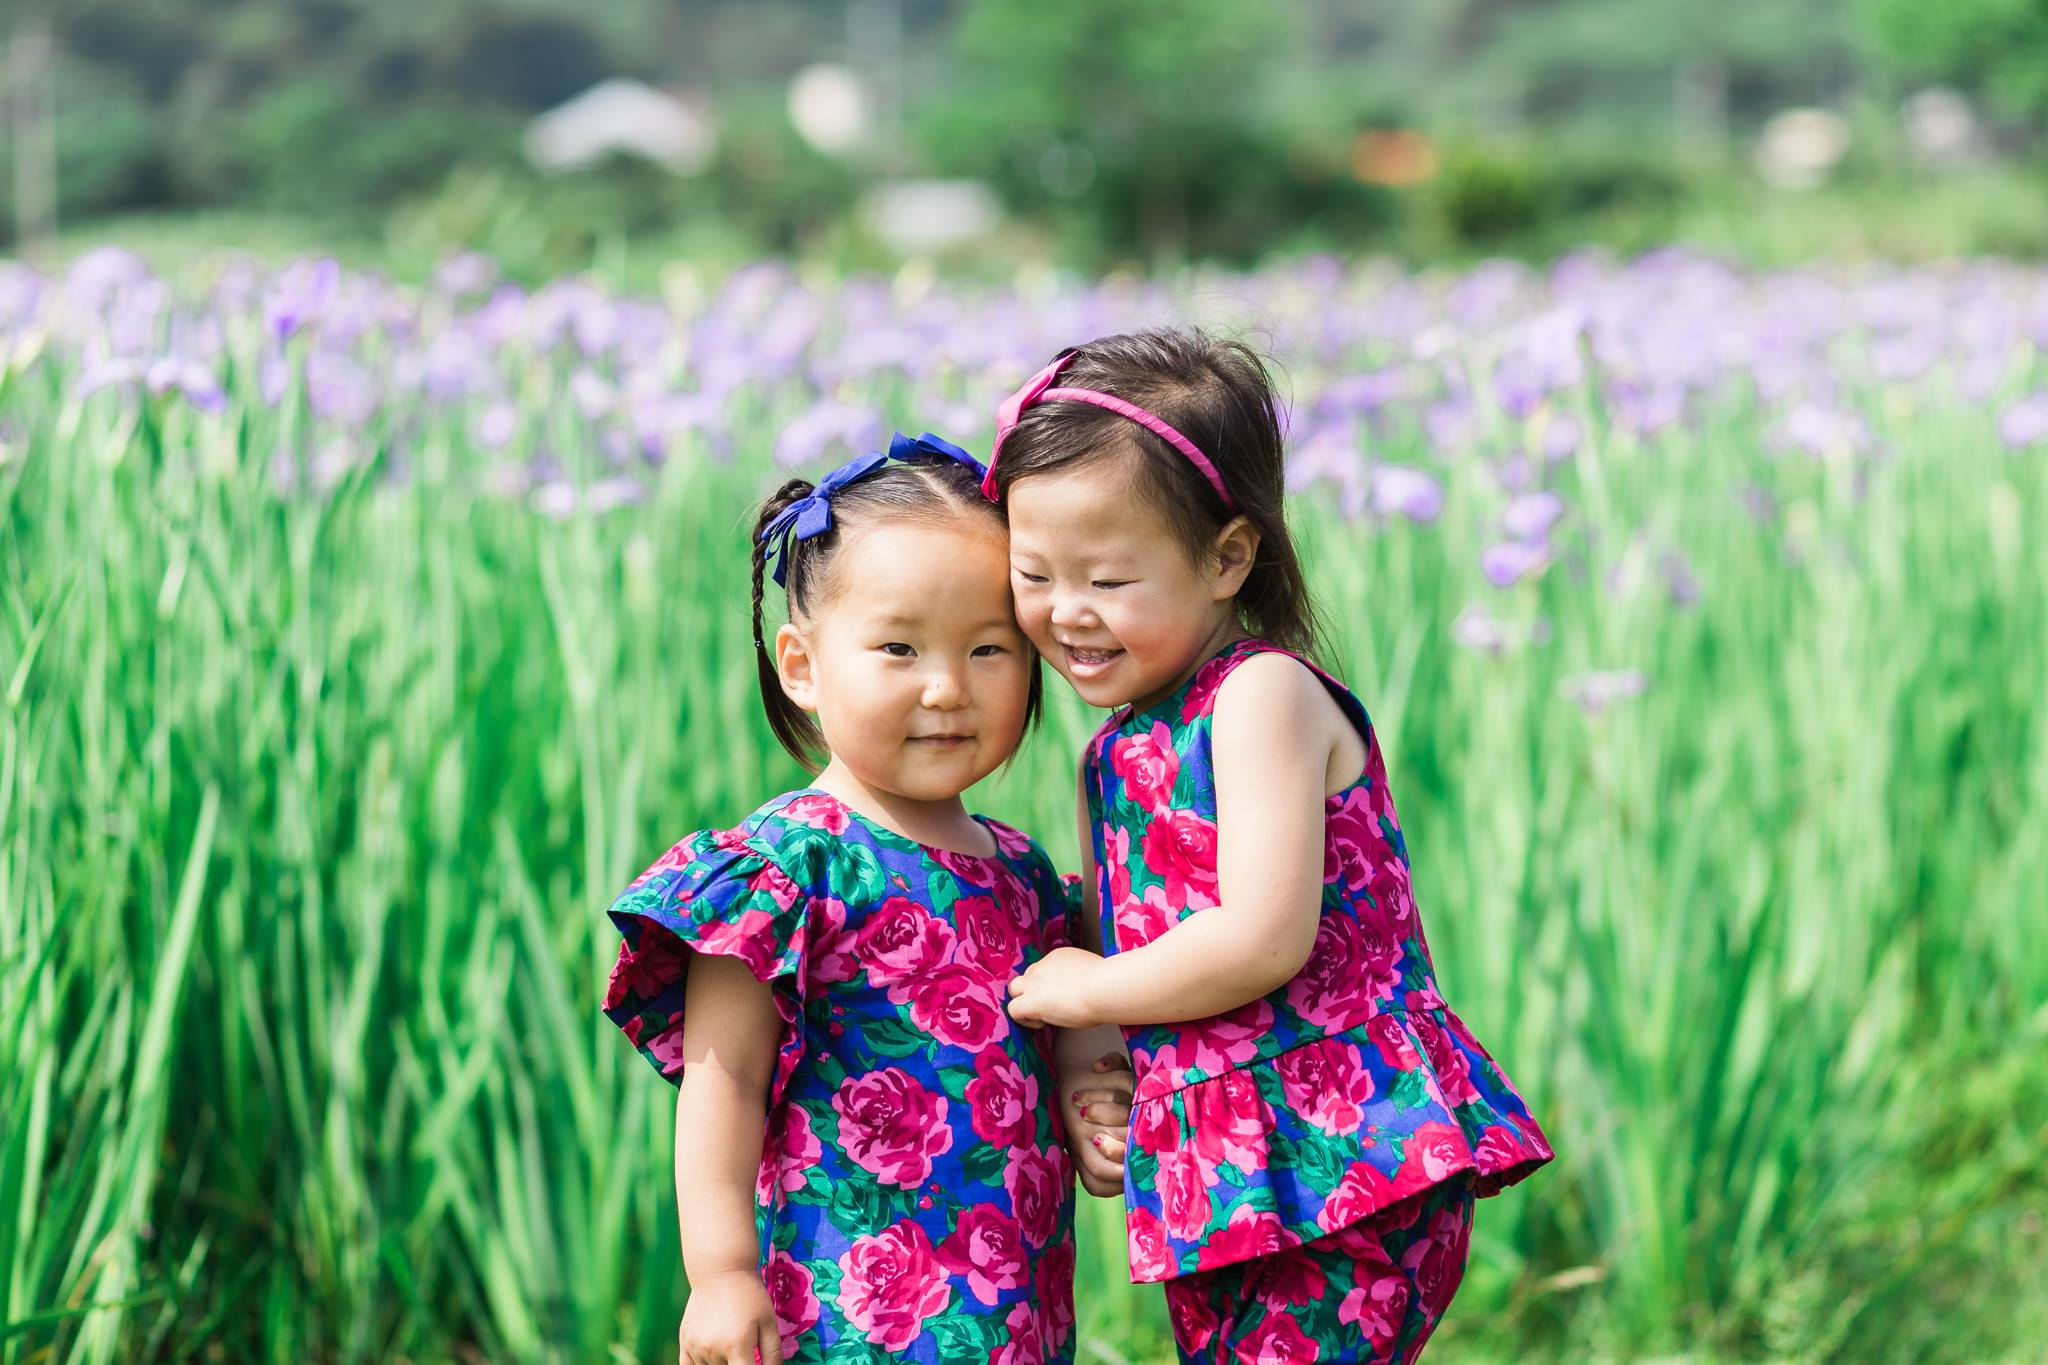 Okinawa iris field mommy and me1.jpg